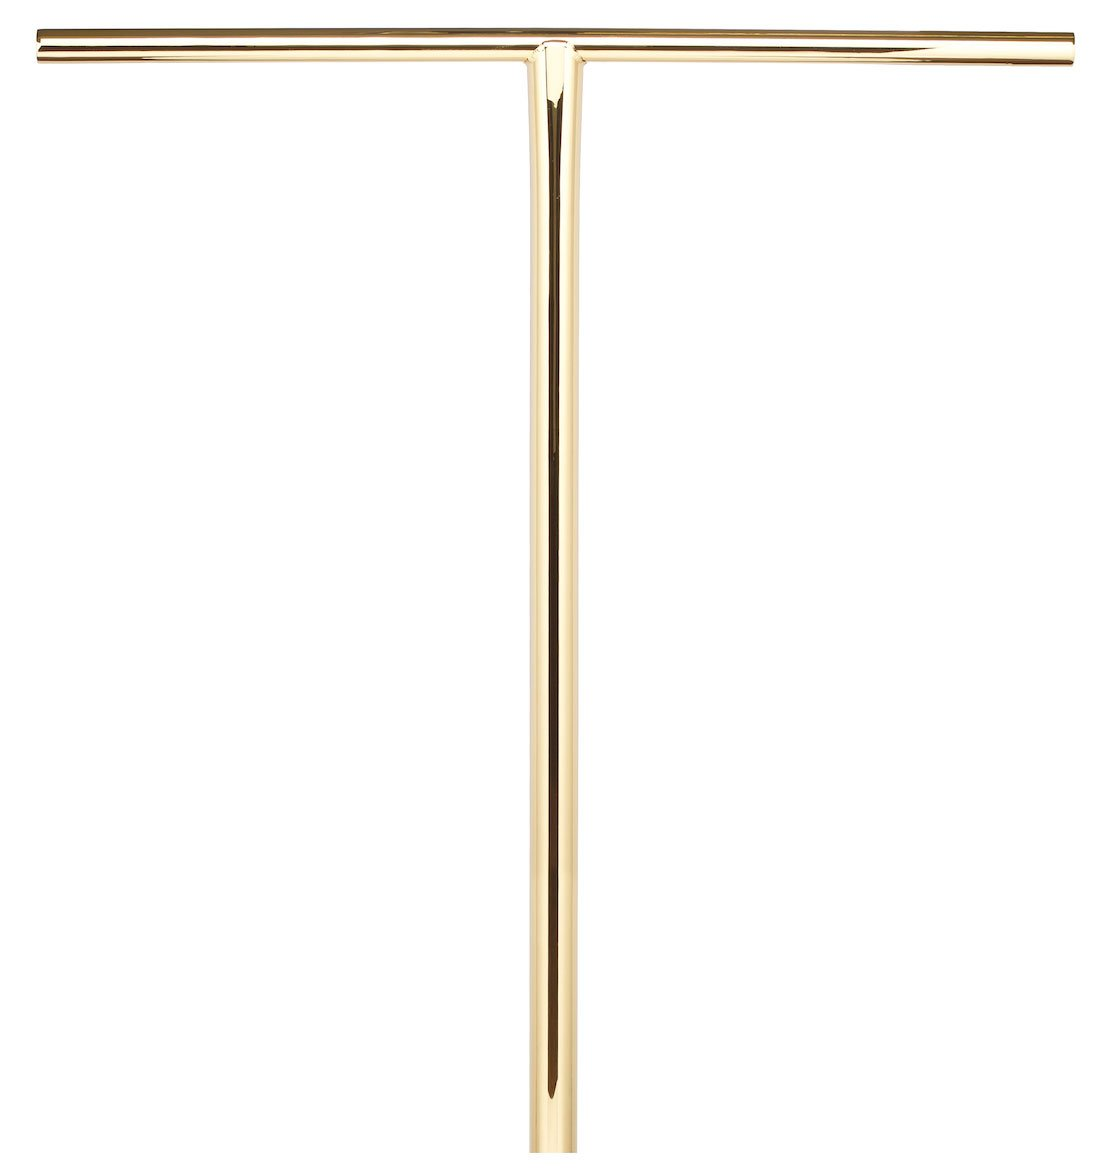 TV 24K Limited Edition Oversized Gold T-Bars by The Vault